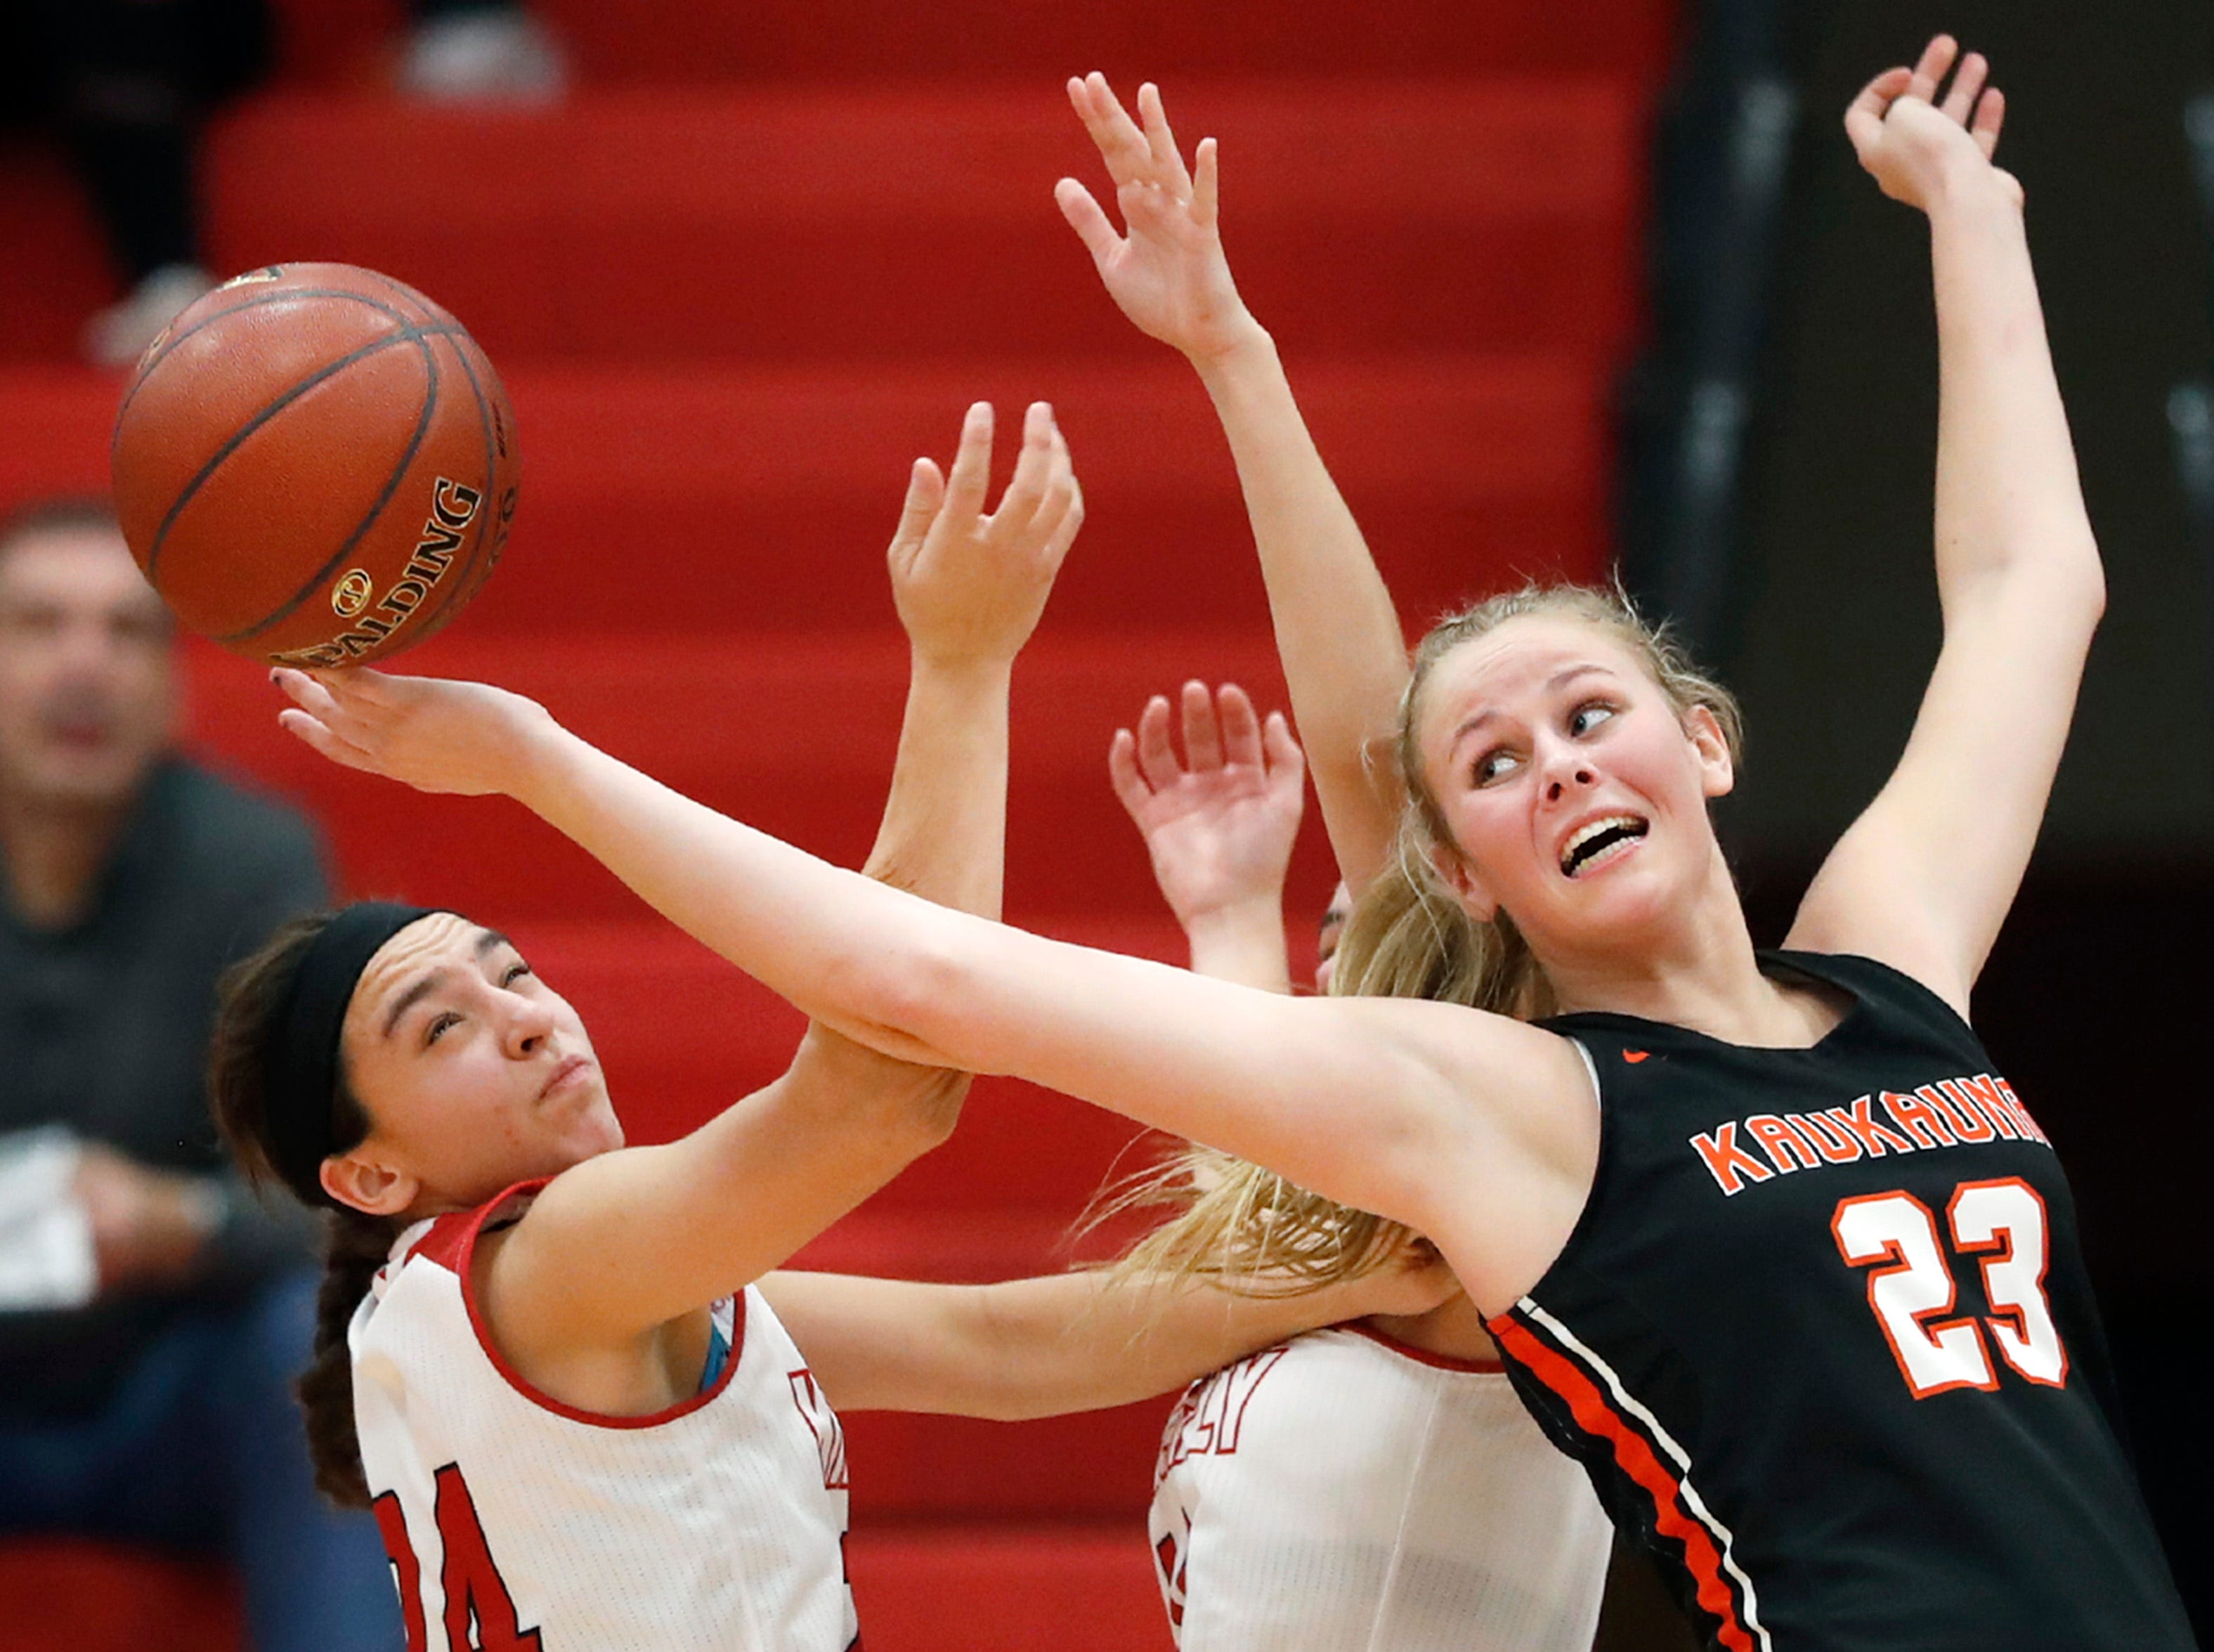 Kaukauna High School's Avery Torrey stretches for a ball during their game against Kimberly High School Friday, Dec. 7, 2018, in Kimberly, Wis. Kimberly High School defeated Kaukauna High School 70-55.